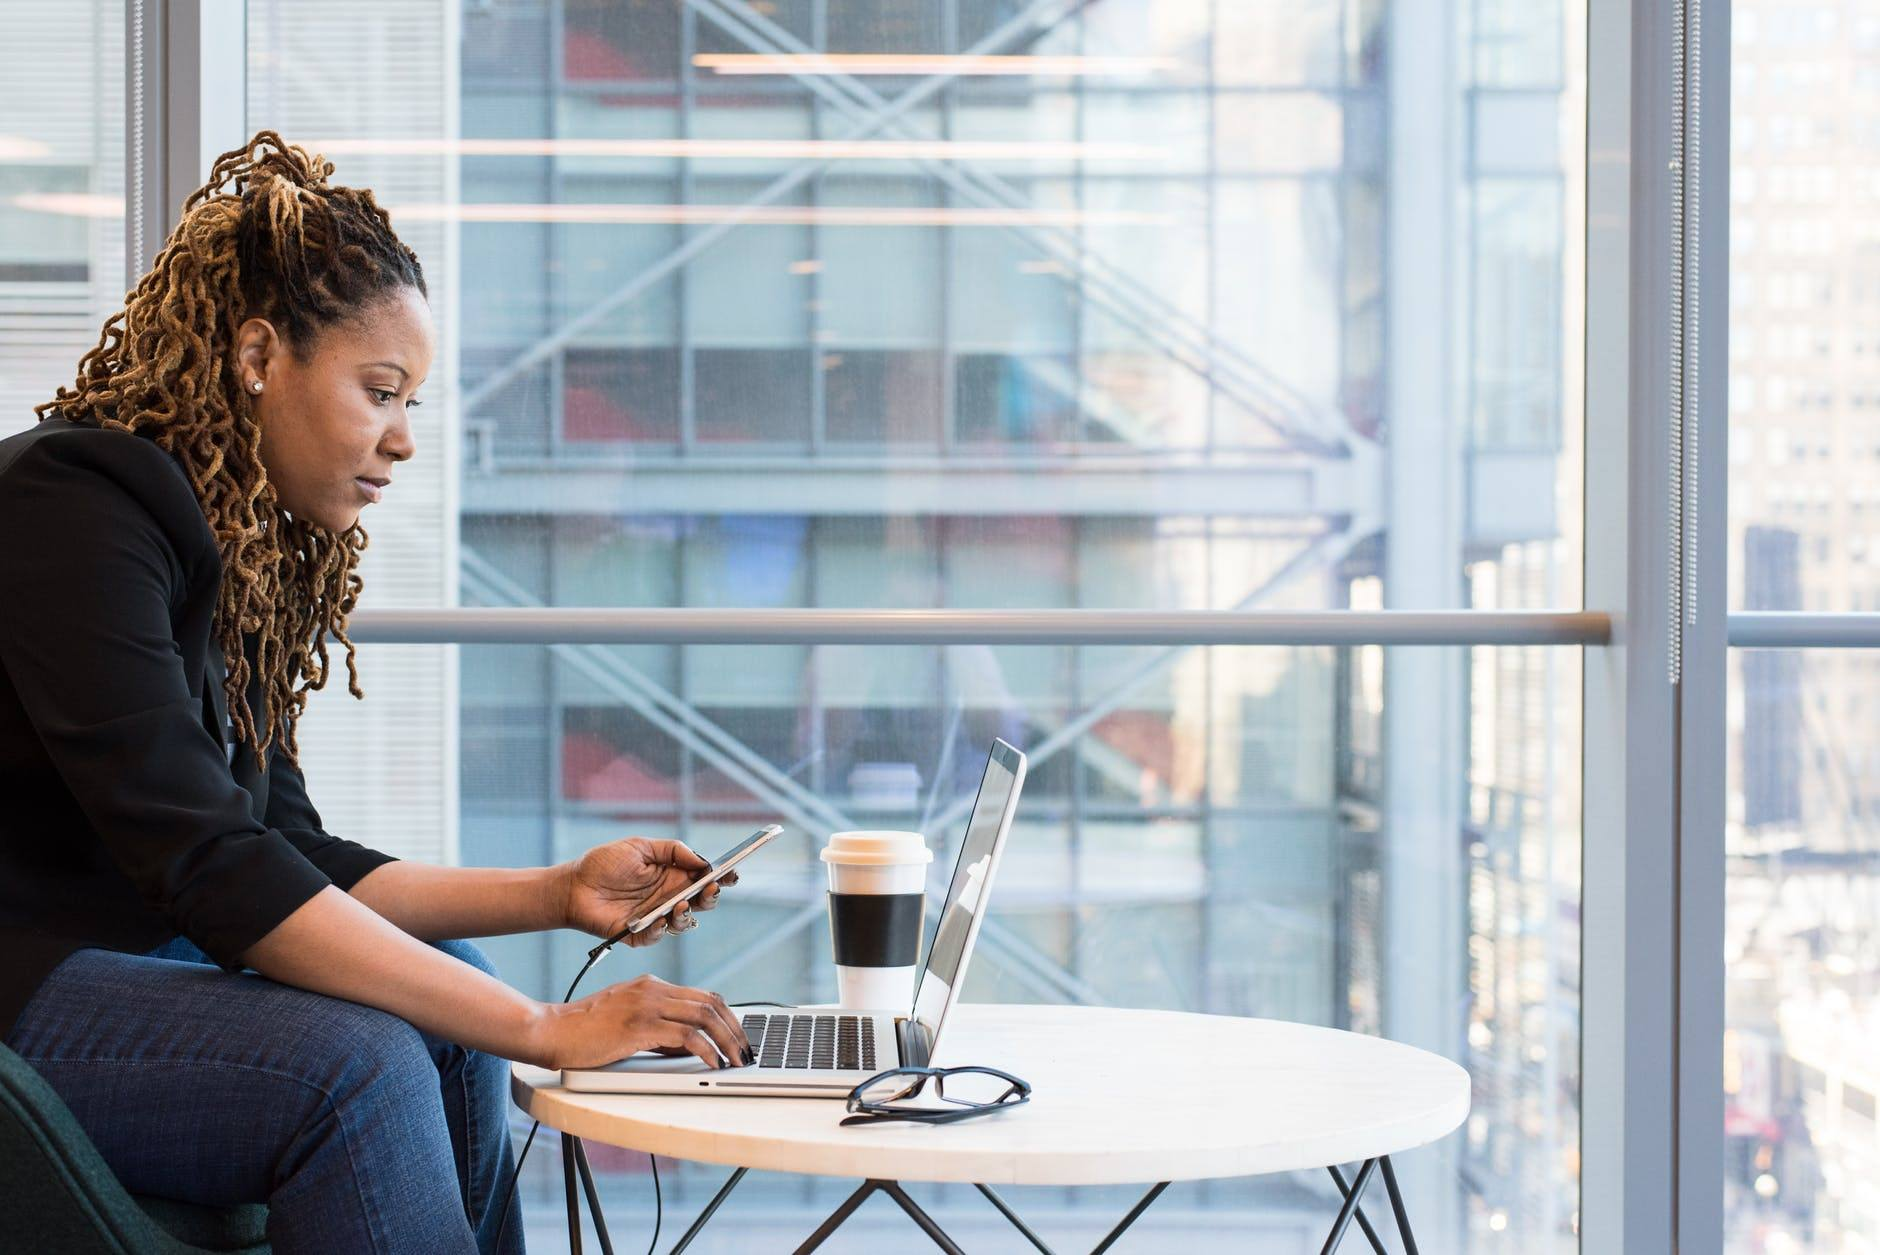 A professional uses her laptop to chat with strangers in other professional networks.